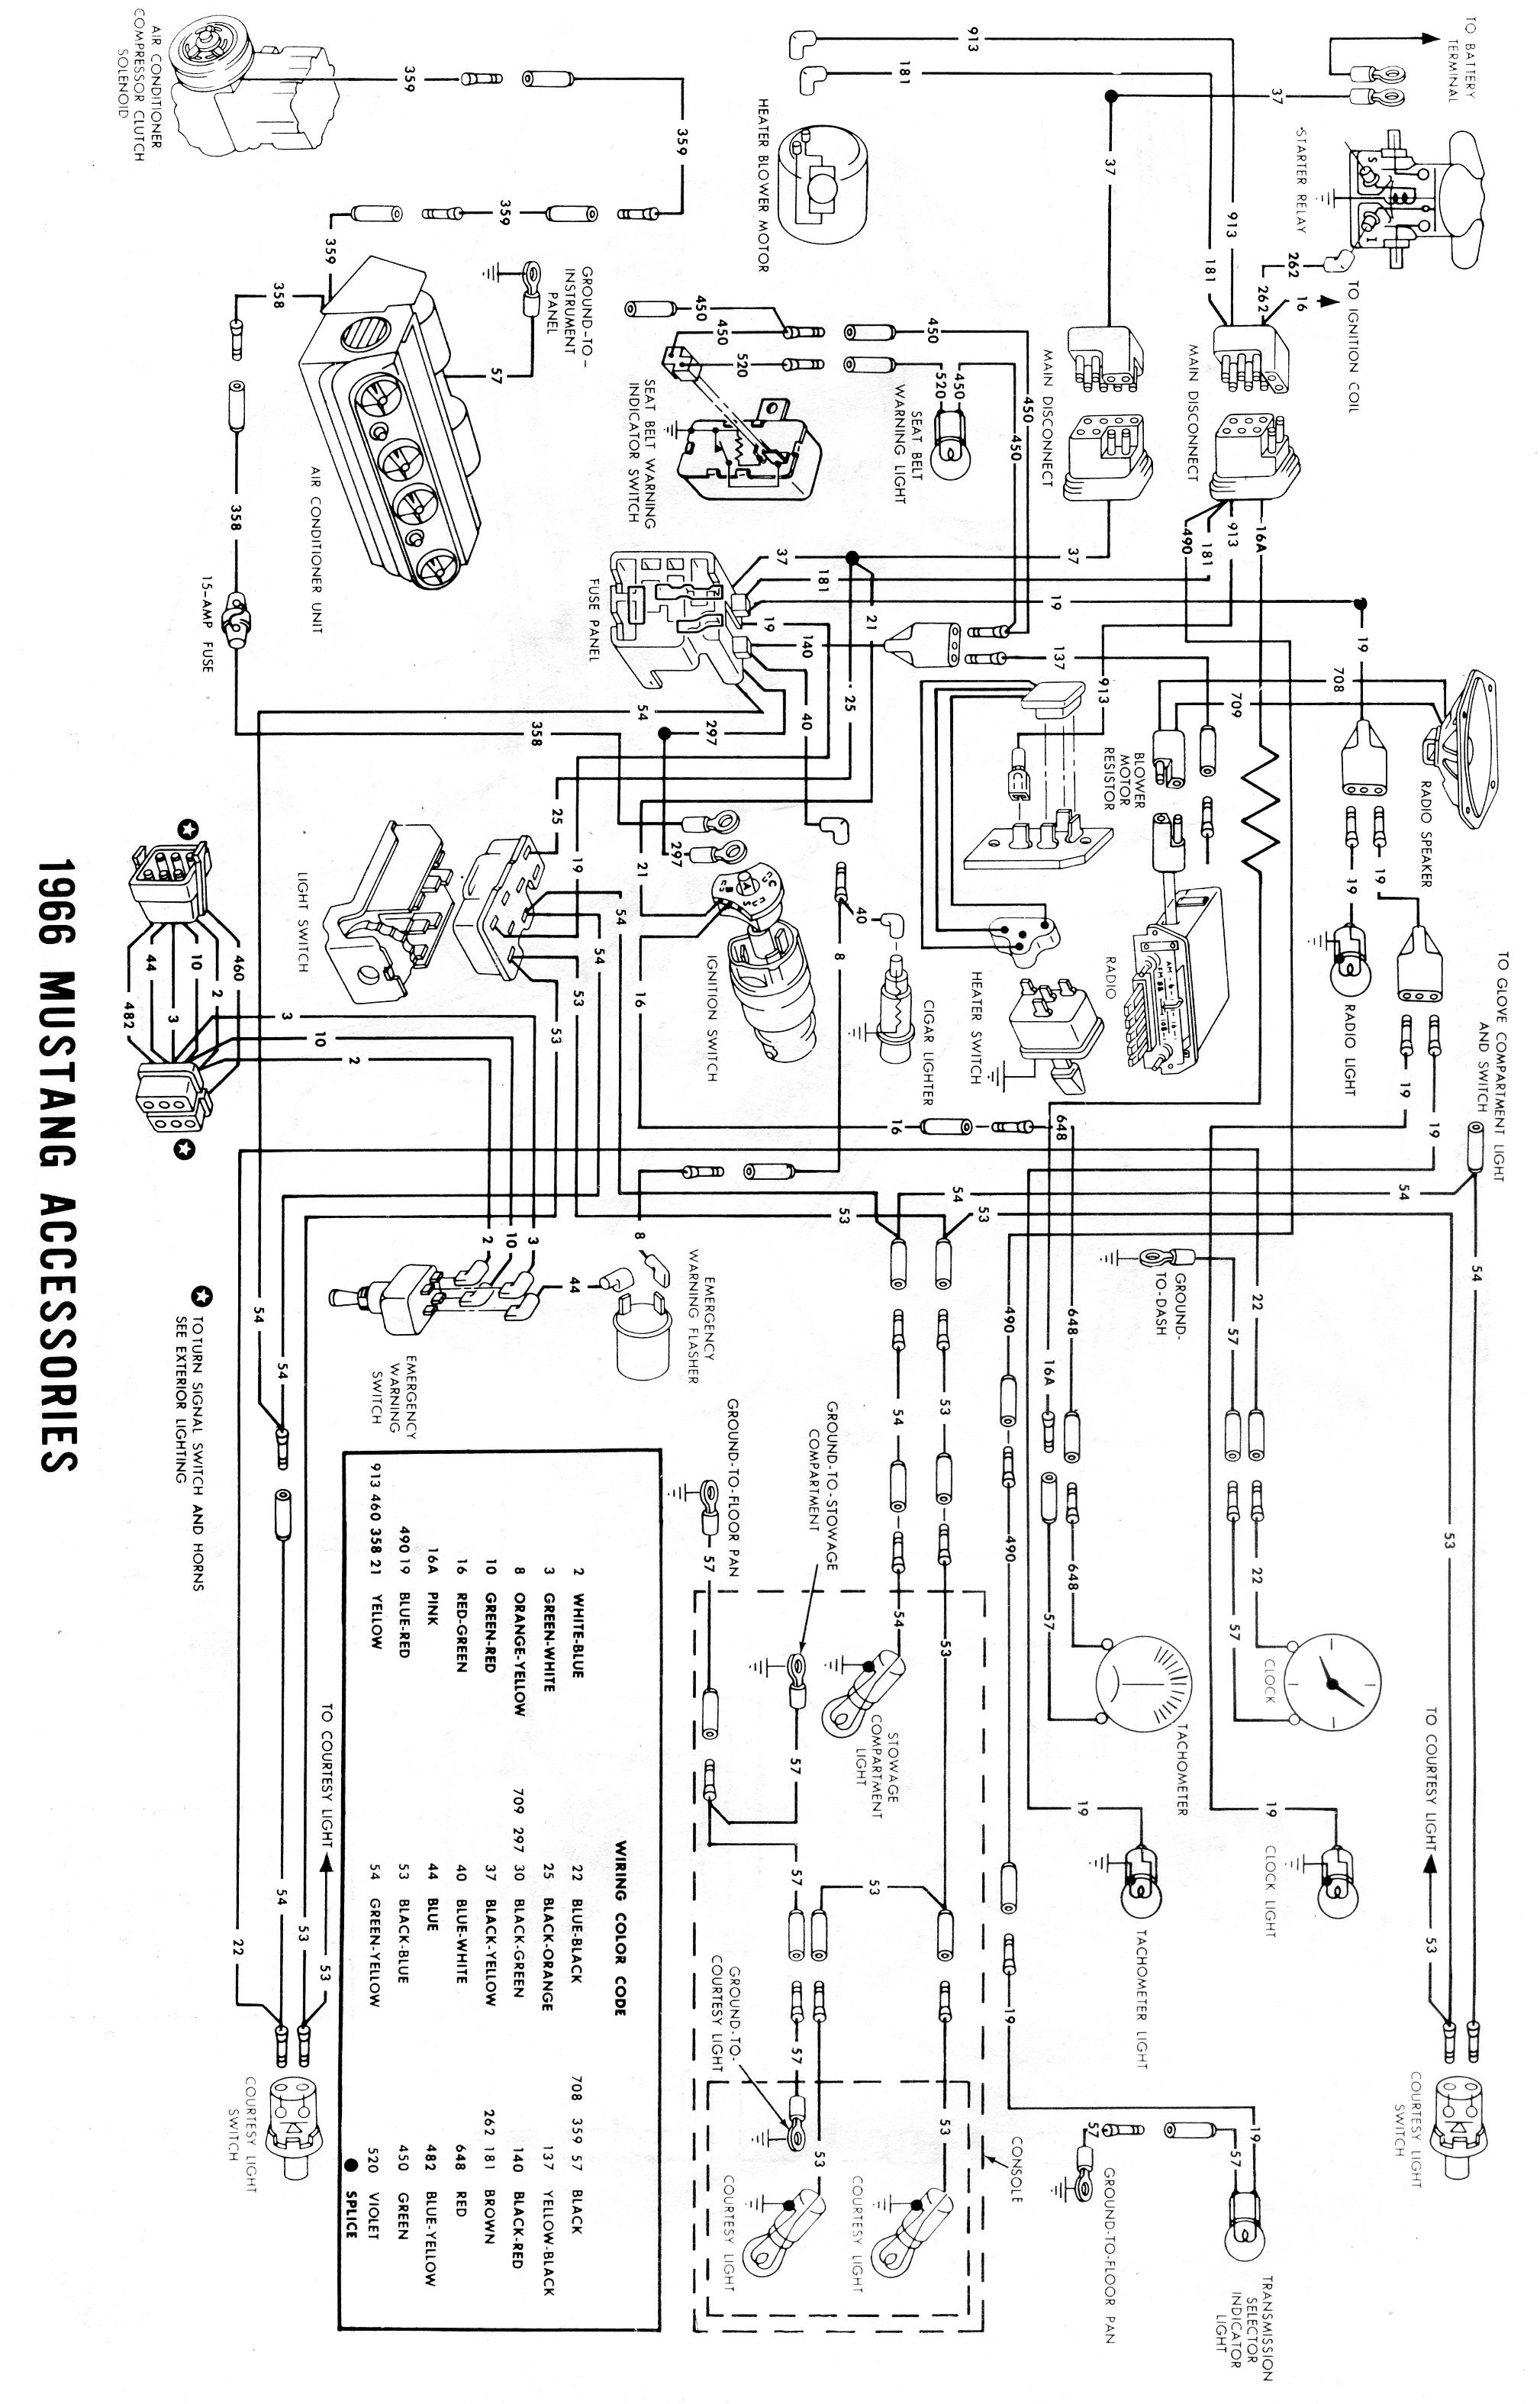 112954d1286846513 why does my instrument fuse keep blowing out mustang wiring 300dpi003 why does my instrument fuse keep blowing out? ford mustang forum 1966 mustang fuse box diagram at bayanpartner.co